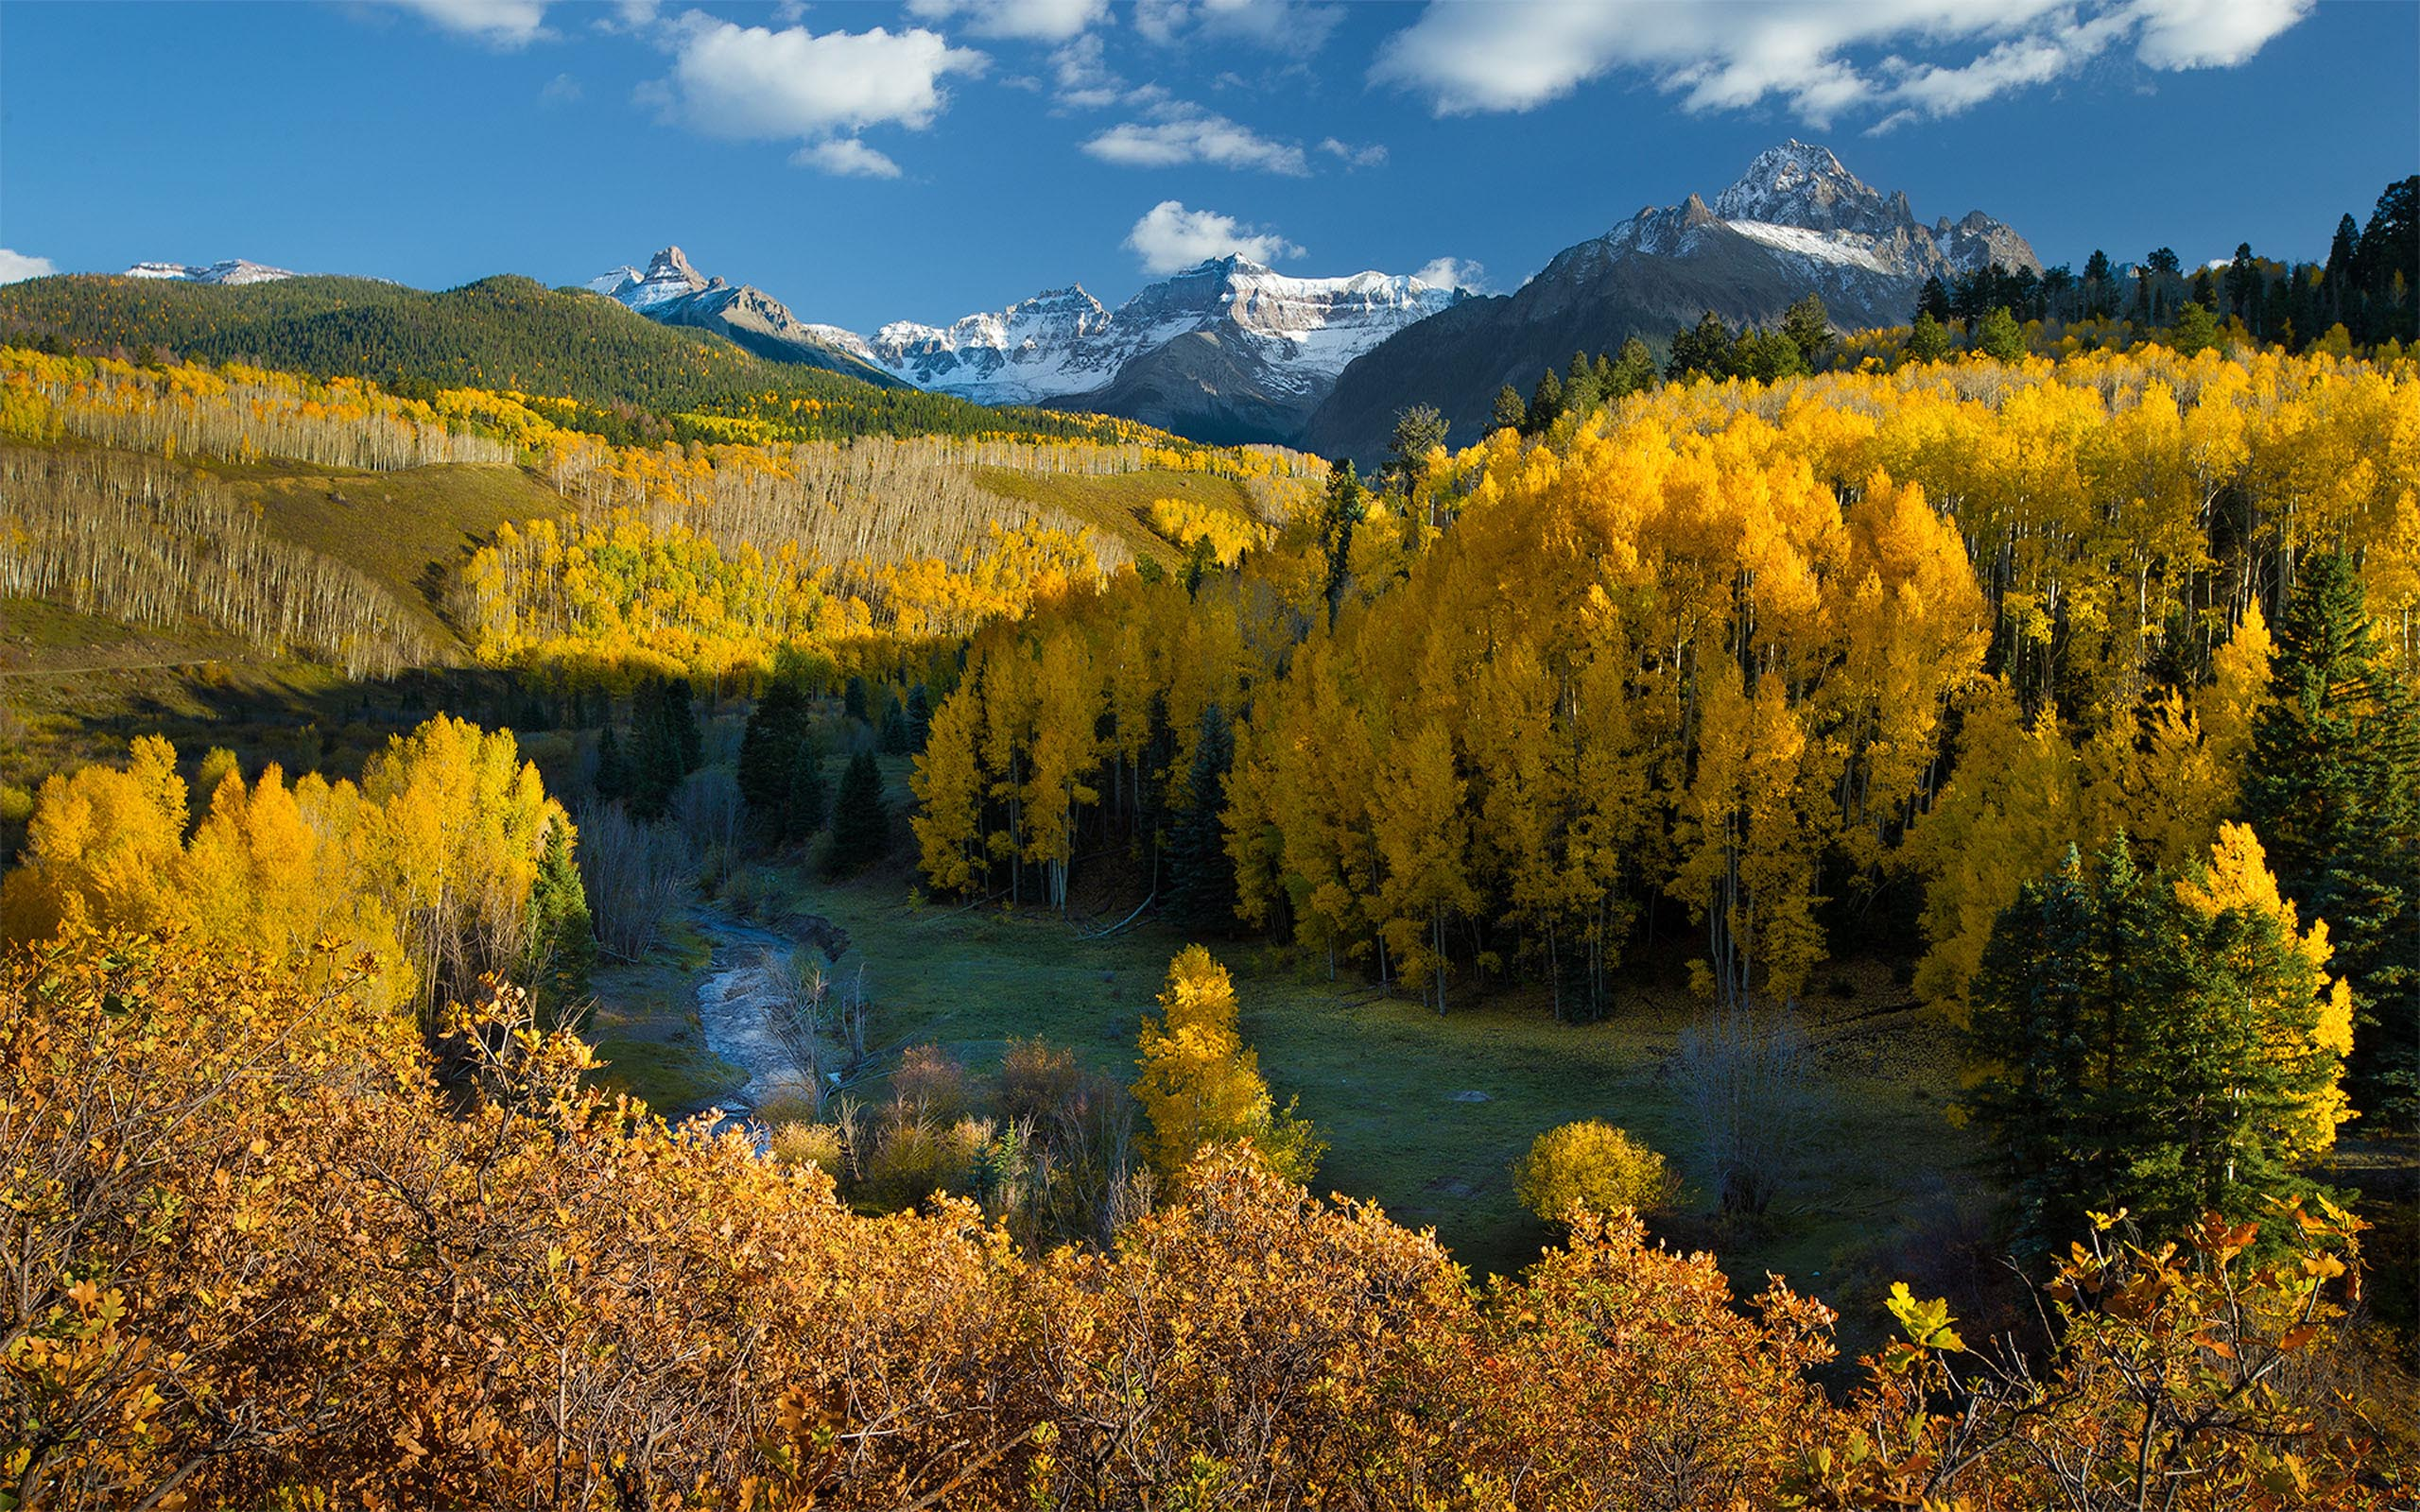 Windows 10 Wallpapers Hd Fall Nature Autumn In Colorado Forest With Yellow Leaves